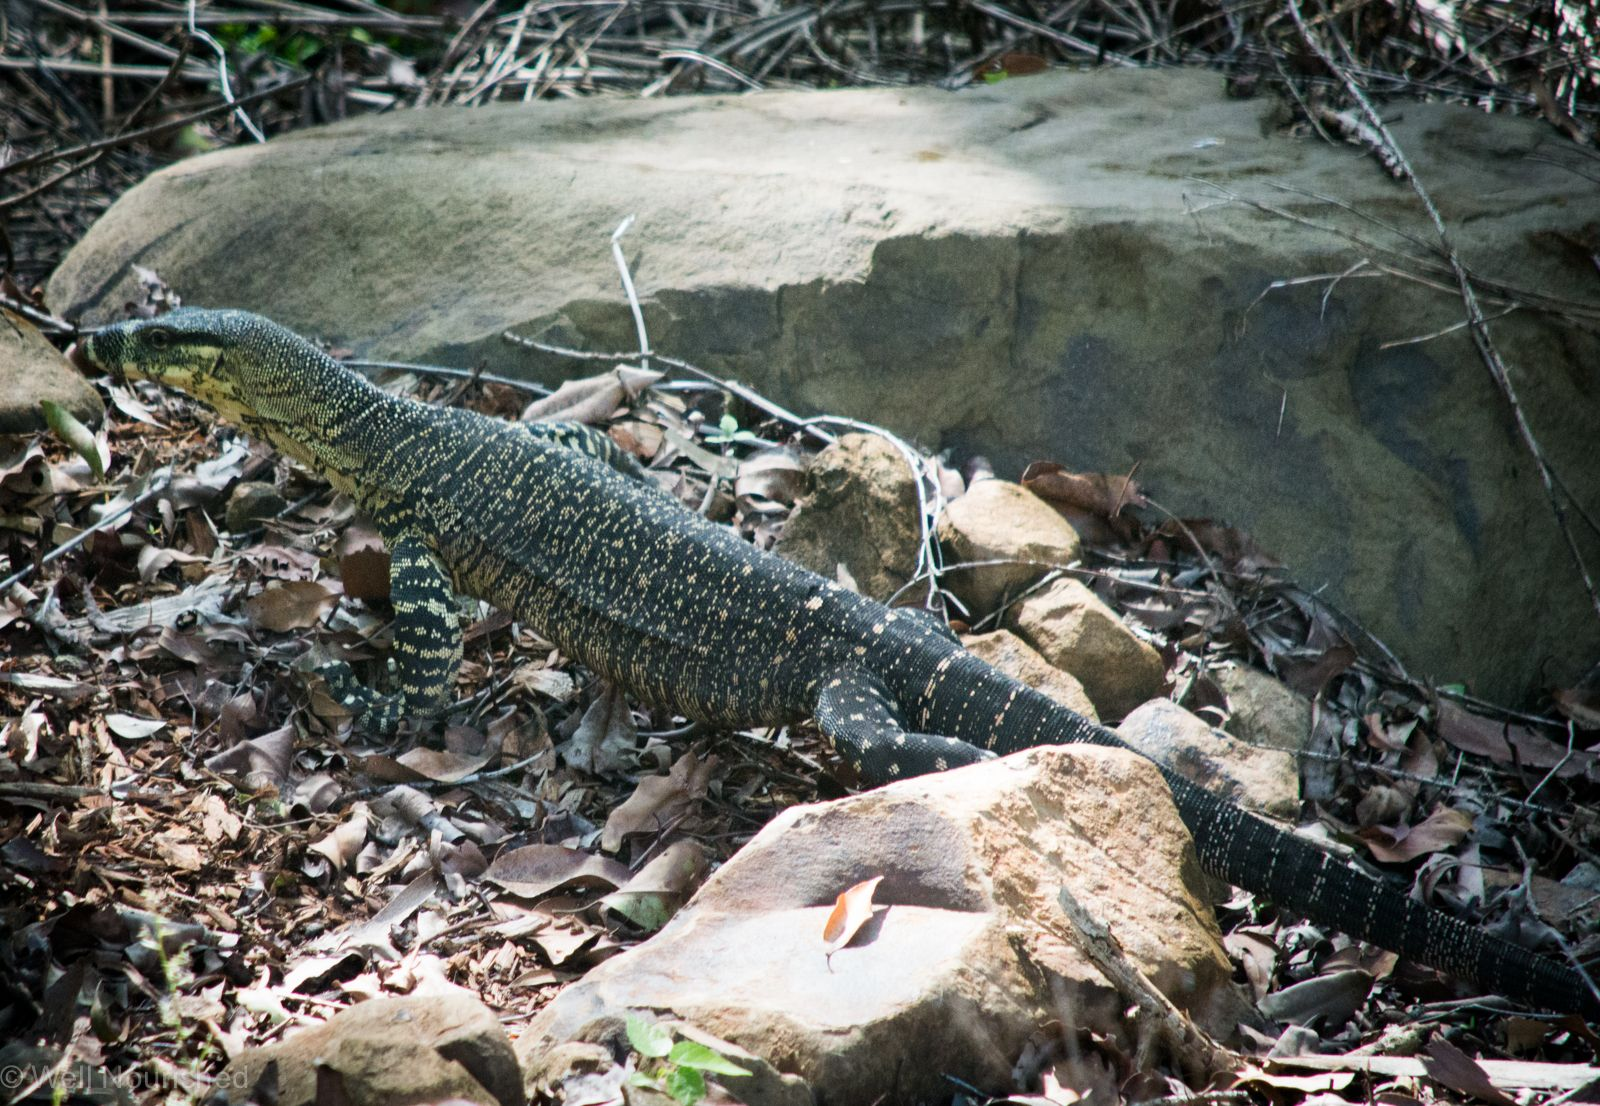 this lace monitor lizard is an occasional visitor in my